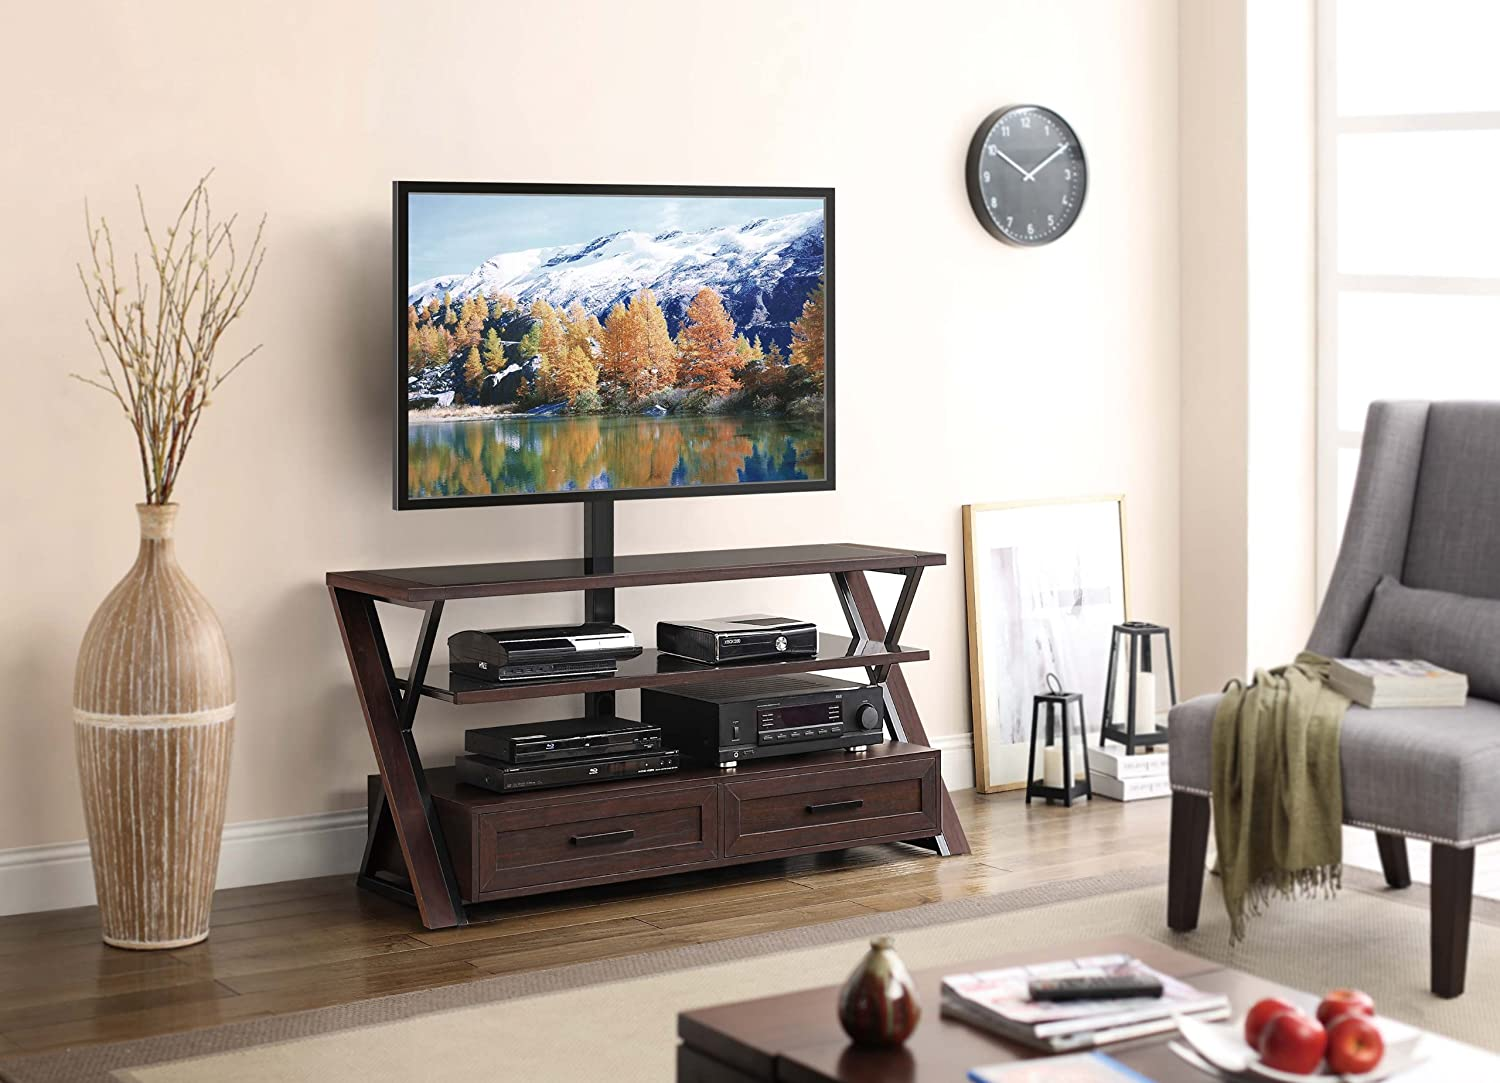 The 5 Best TV Stands In 2018: Reviews & Buying Guide 8